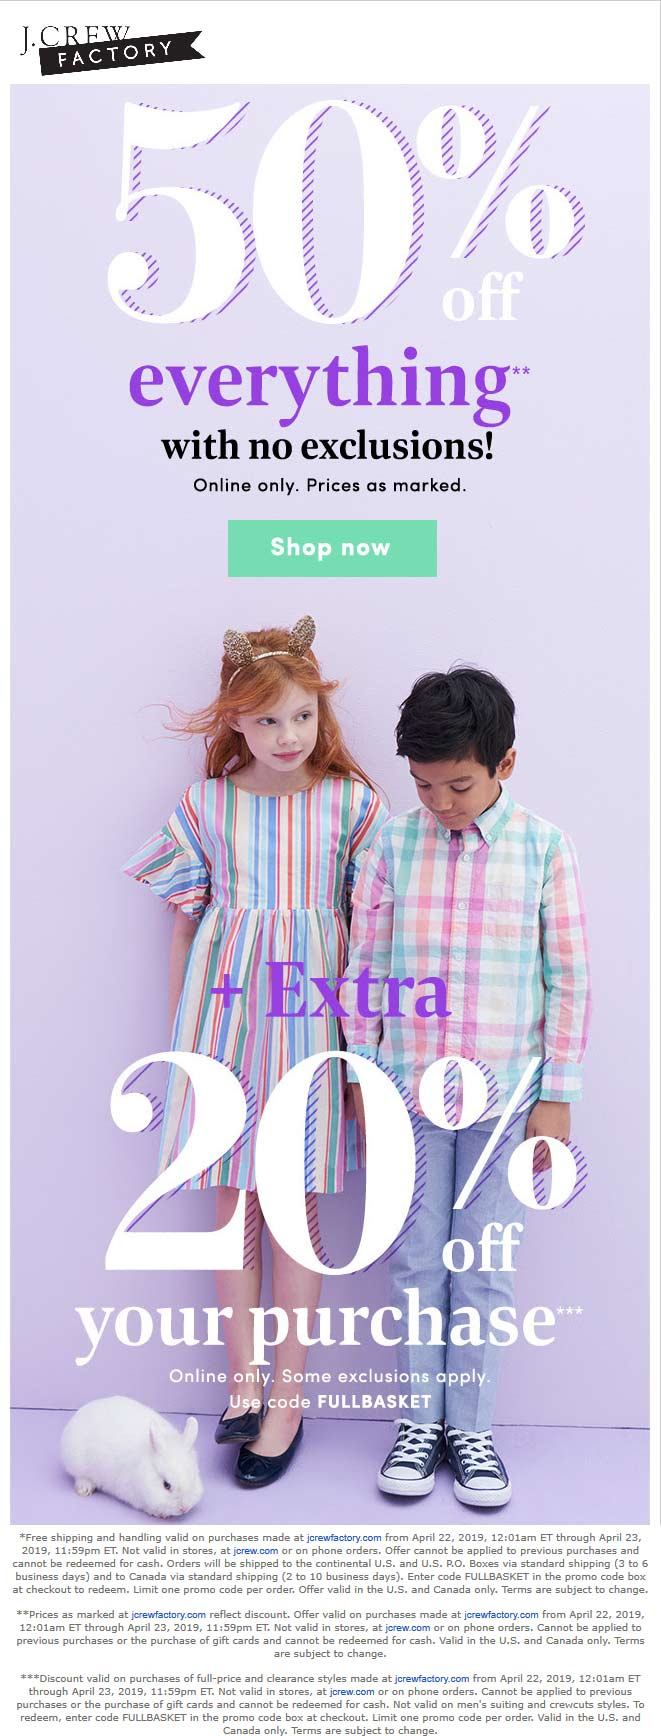 J.Crew Factory coupons & promo code for [August 2020]